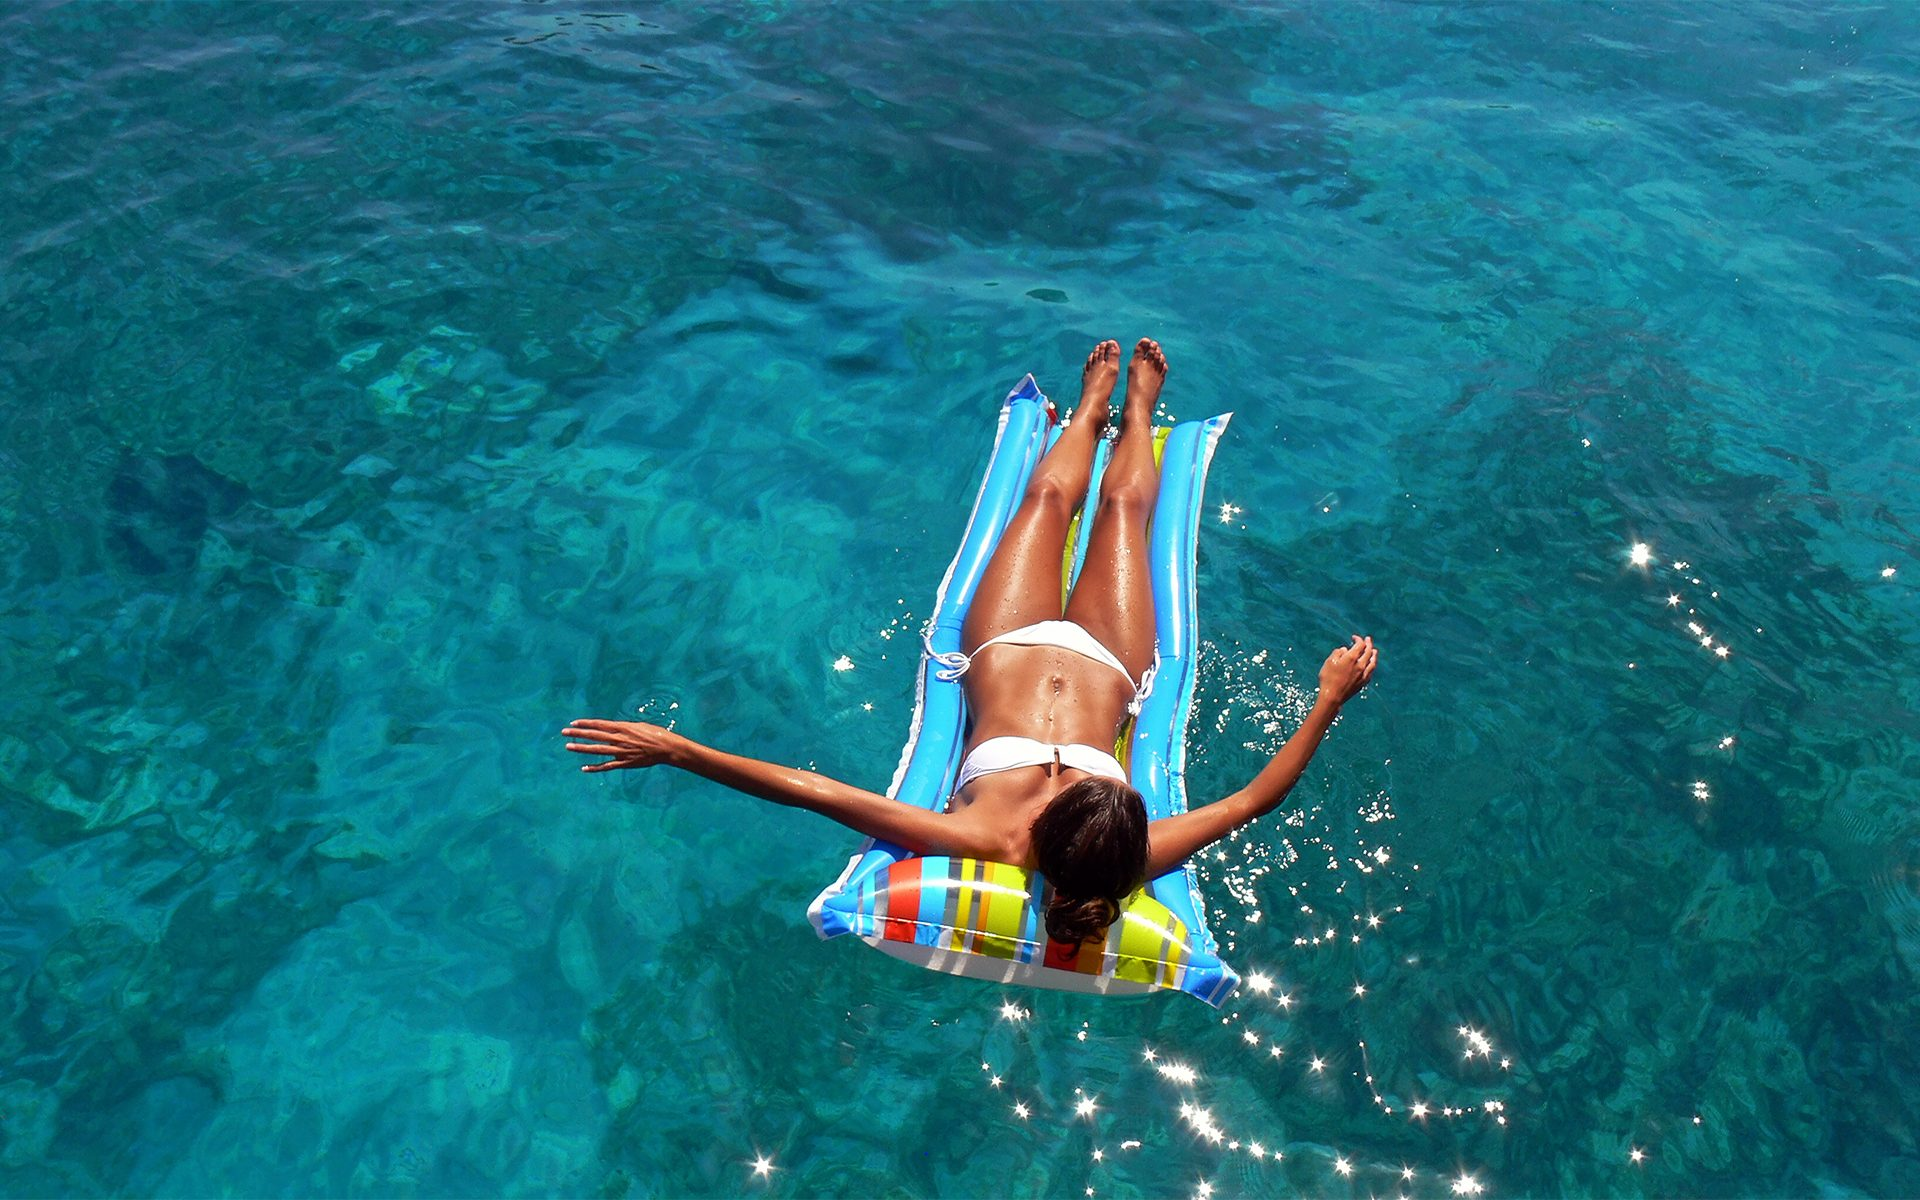 laguna-summer-vacation-and-the-warm-water-hd-for-fullscreen-367022